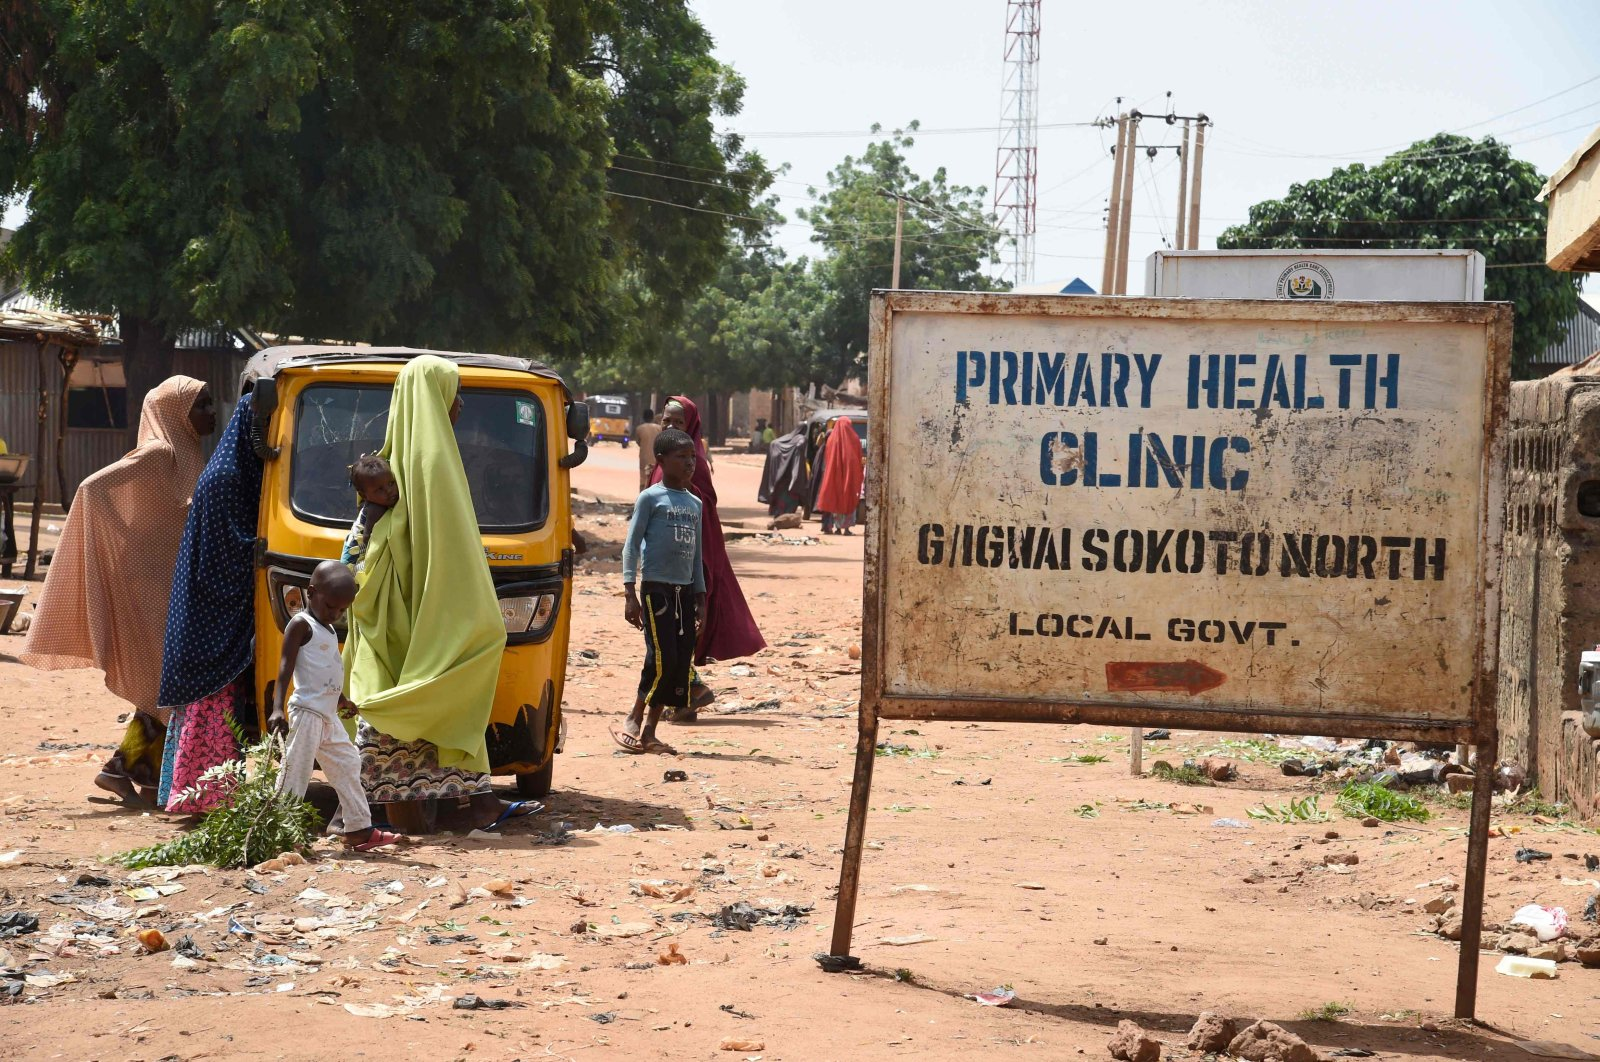 Mothers arrive at a primary health clinic, Glgwai Sokoto North in northwest Nigeria, on Sept. 21, 2021. (AFP Photo)